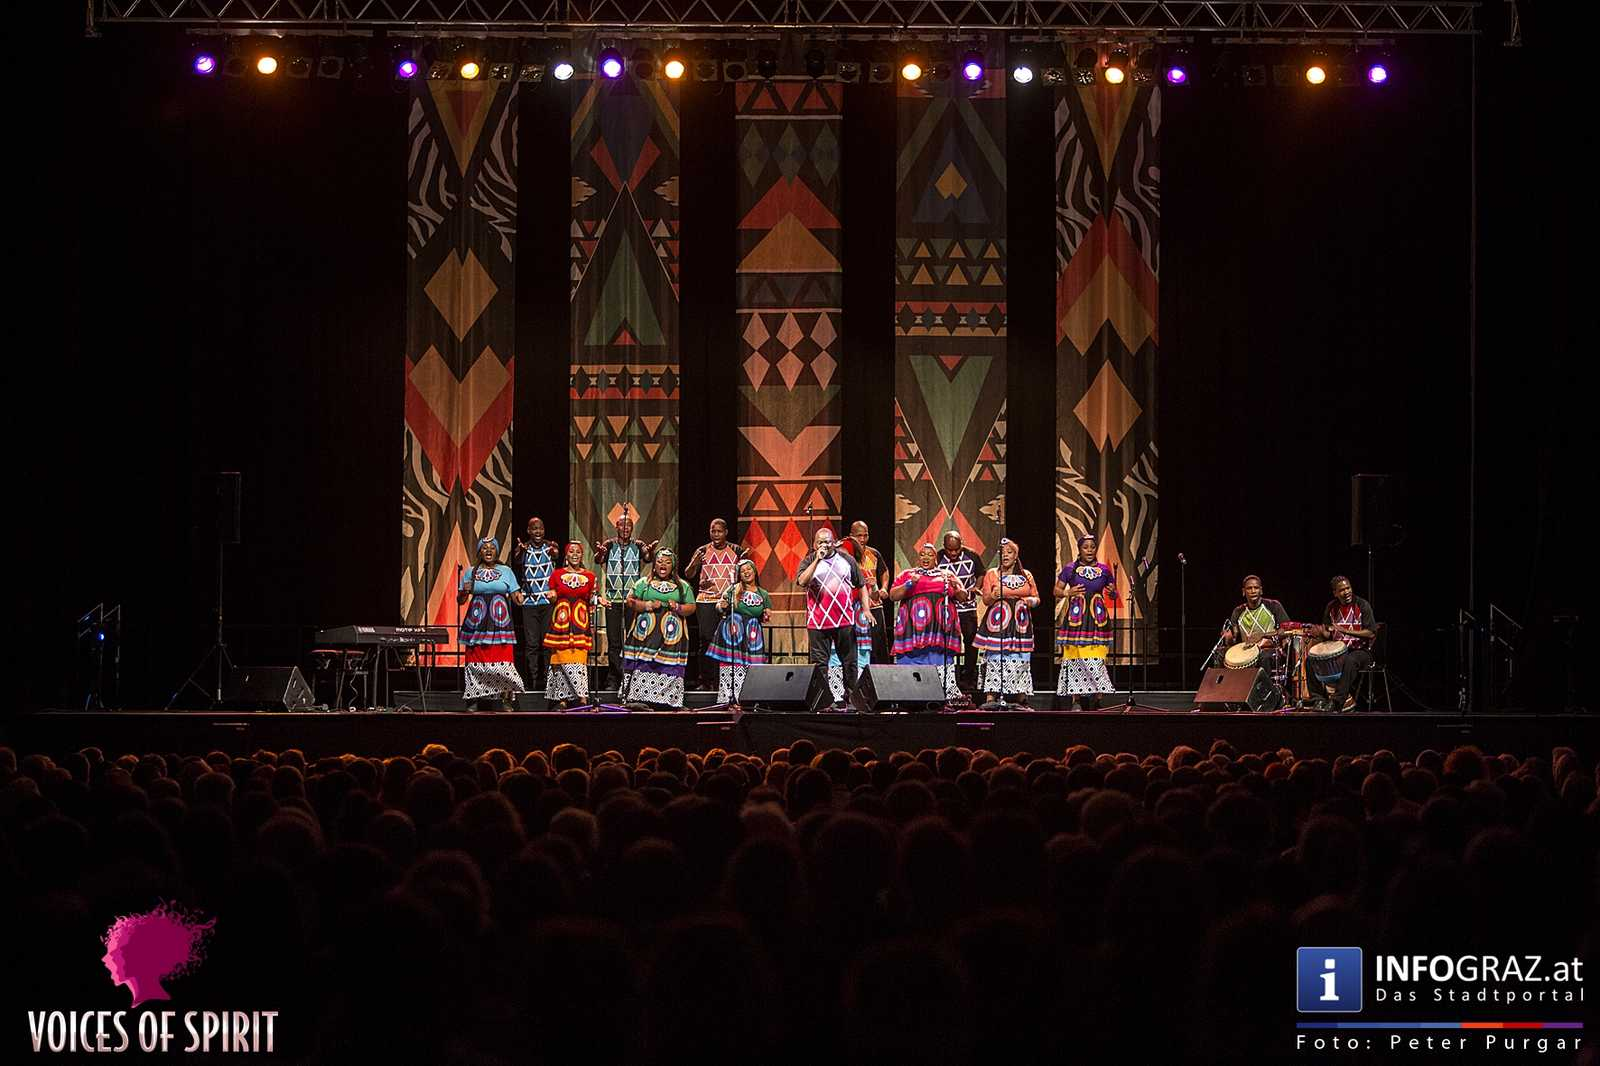 soweto gospel choir internationales chorfestival statdthalle graz voices of spirit eroeffnung festivals 2016 045